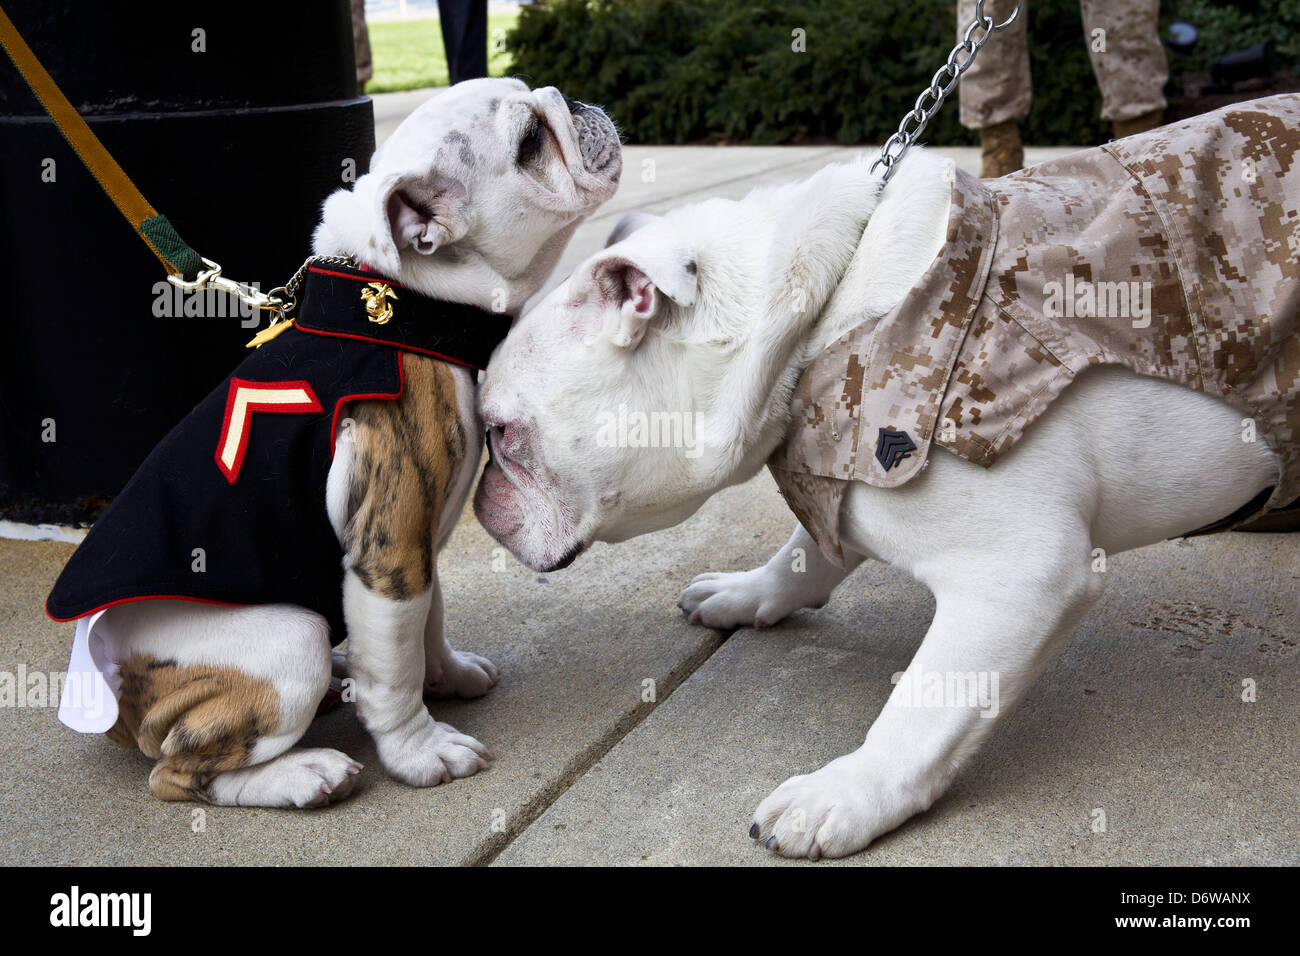 Marine Corps Mascot Dog Name